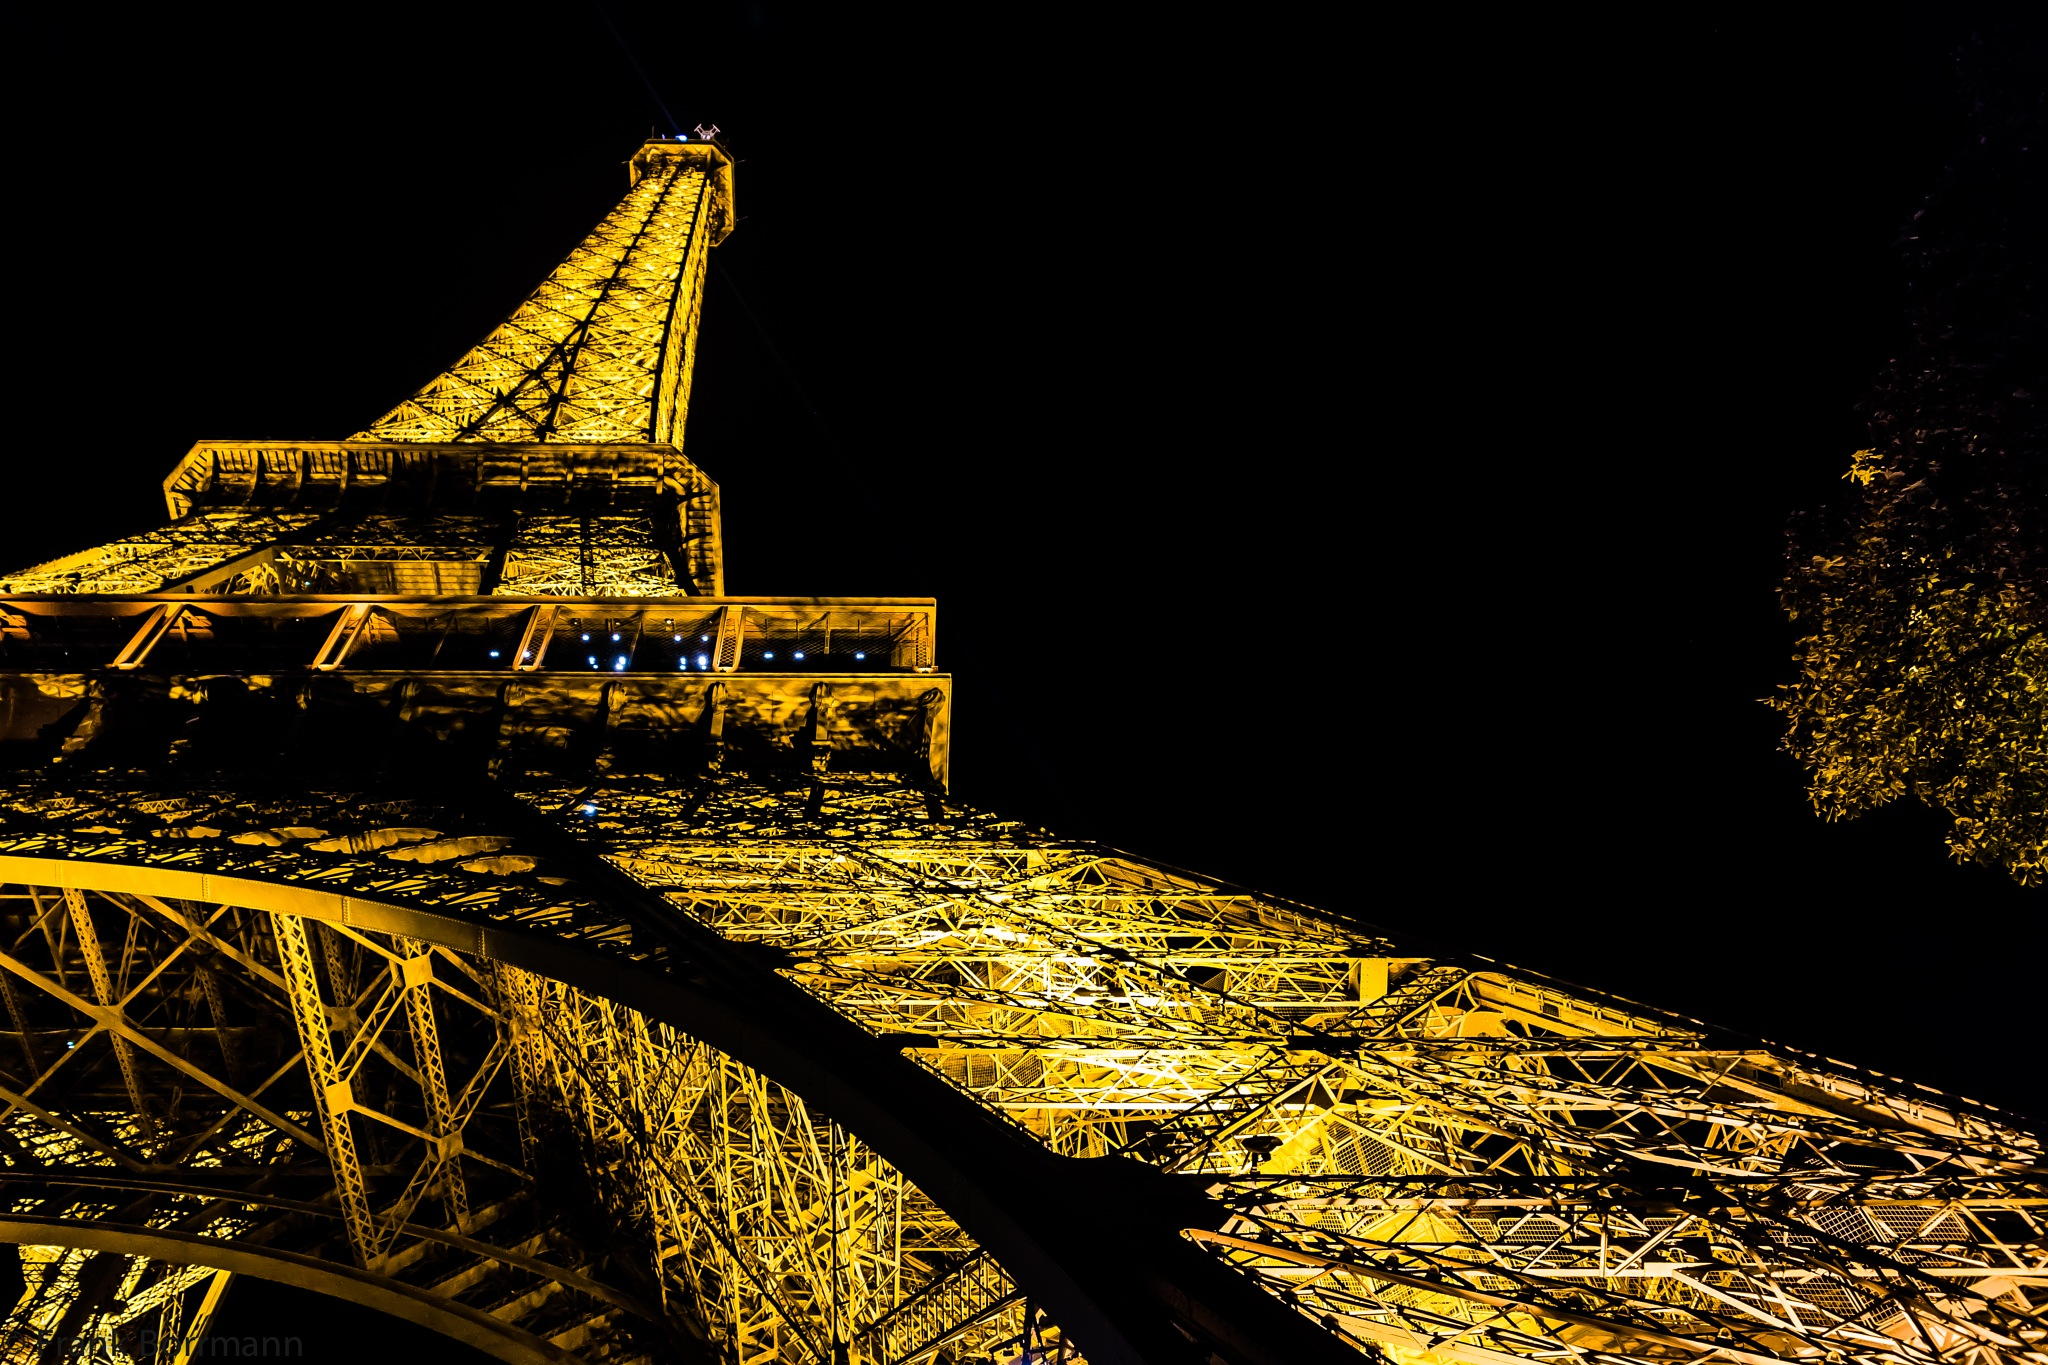 Night shoot of the Eiffel tower by FraBo